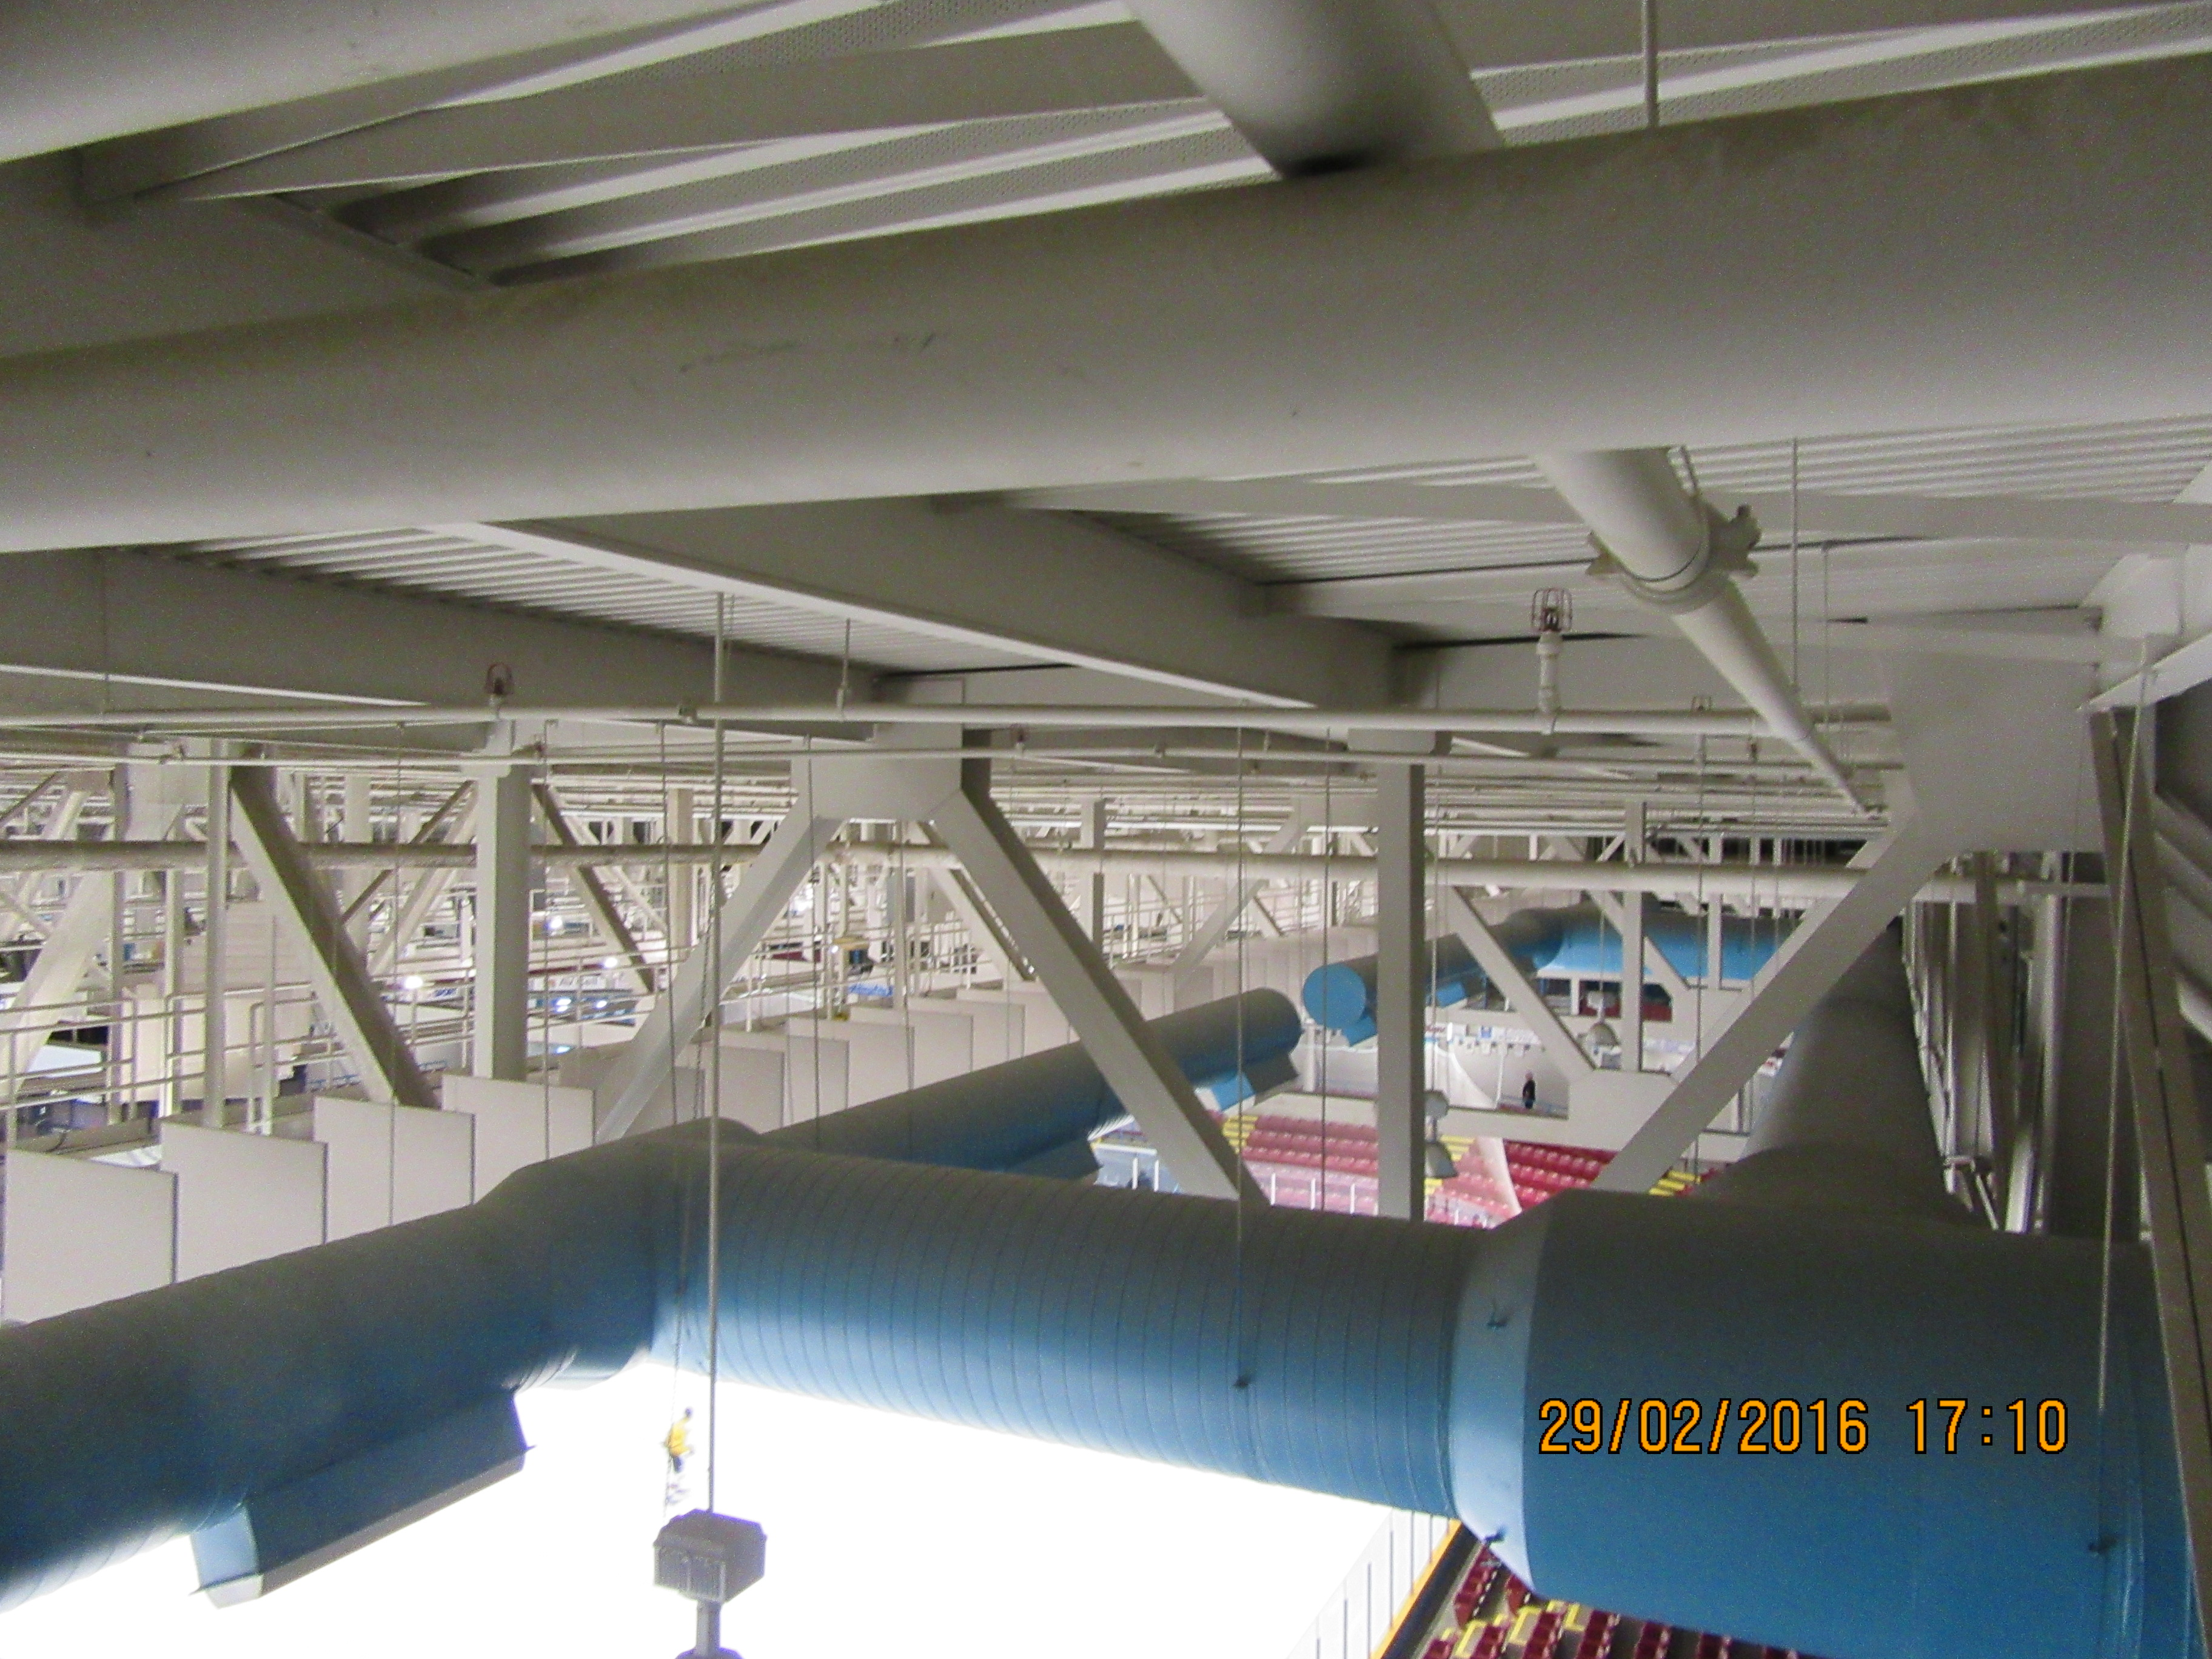 Campbellton Arena the roof structure